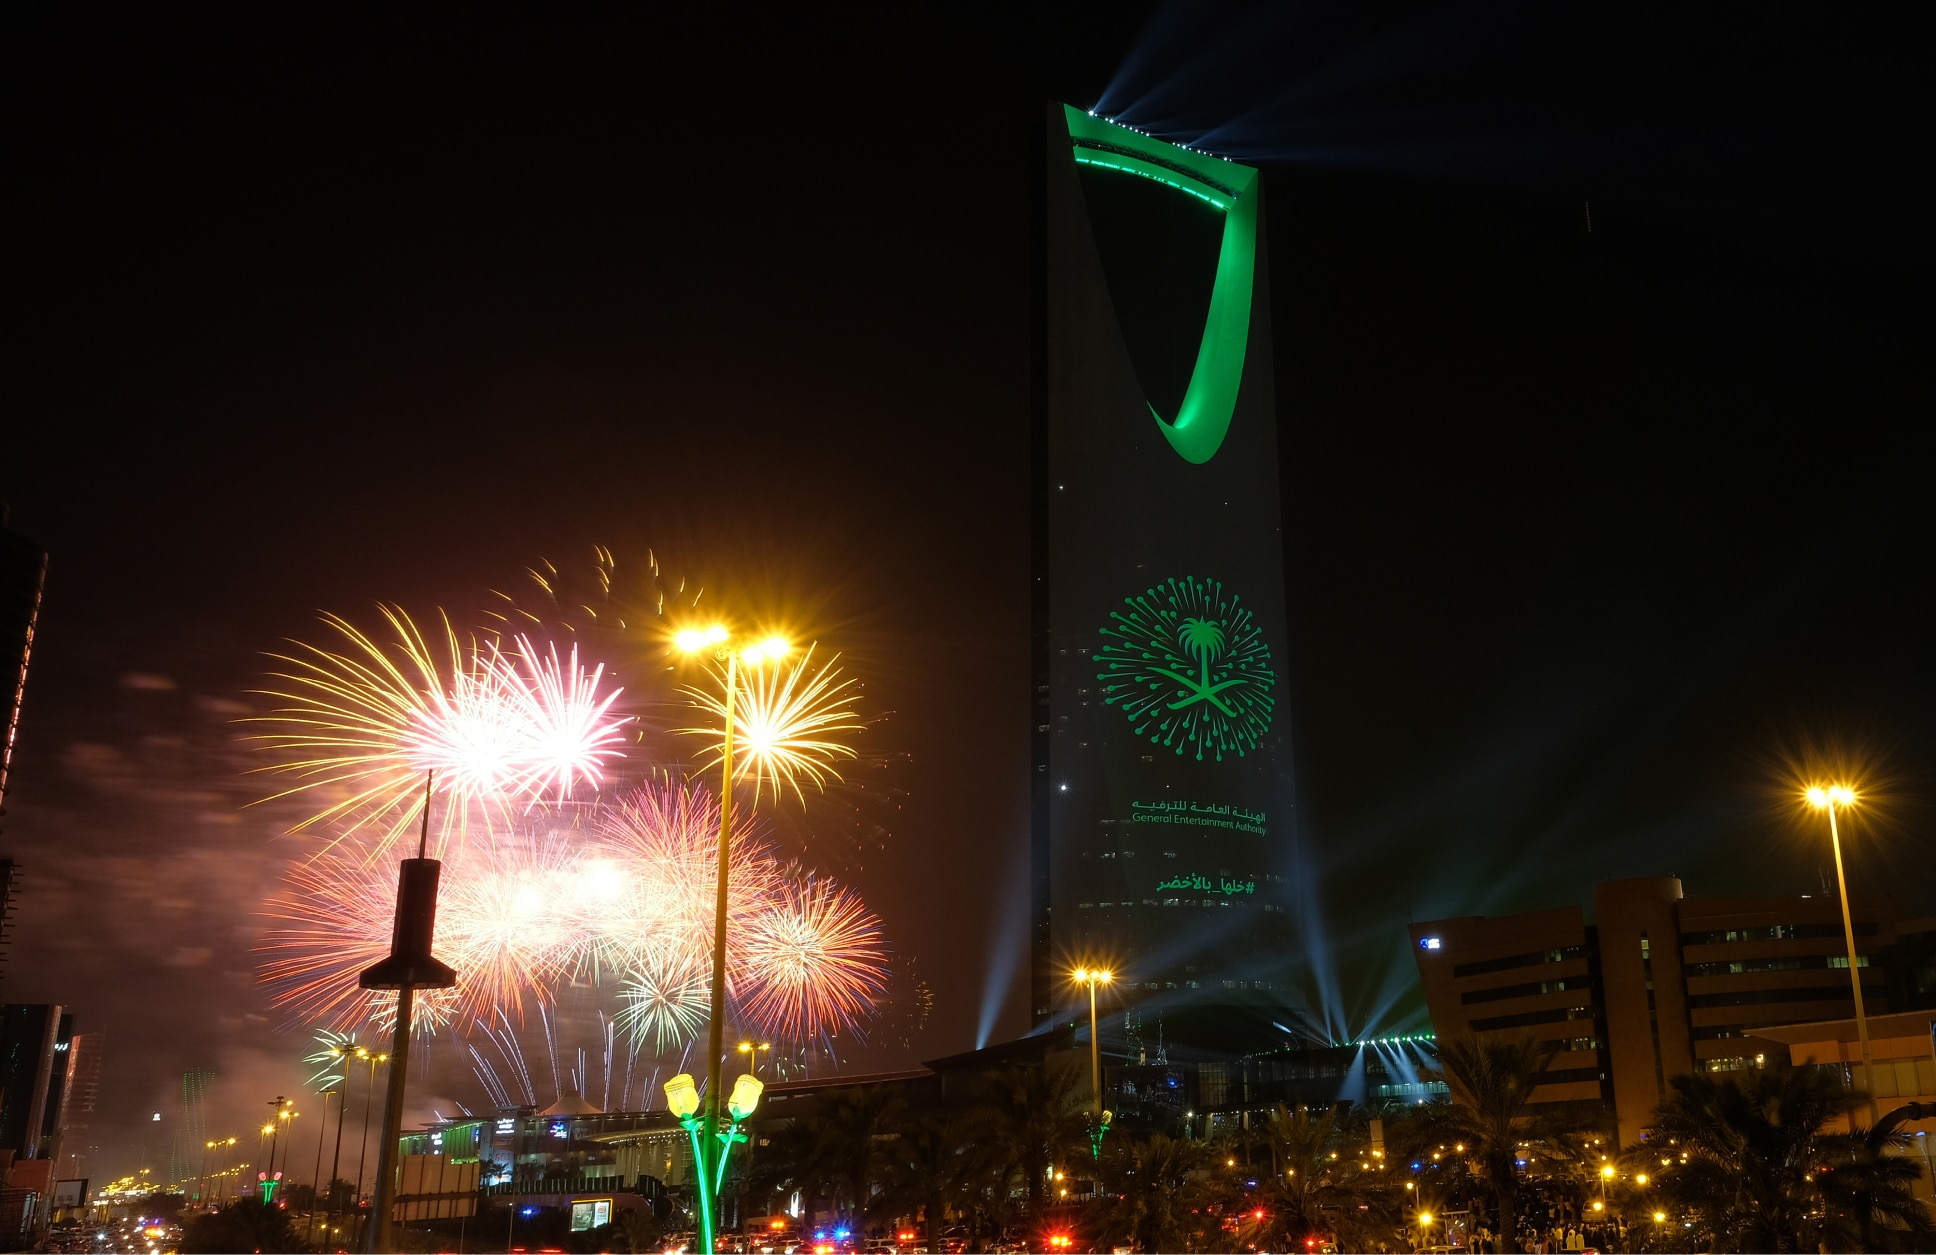 Kingdom-Of-Saudi-Arabia-National-Day-Riyadh-7